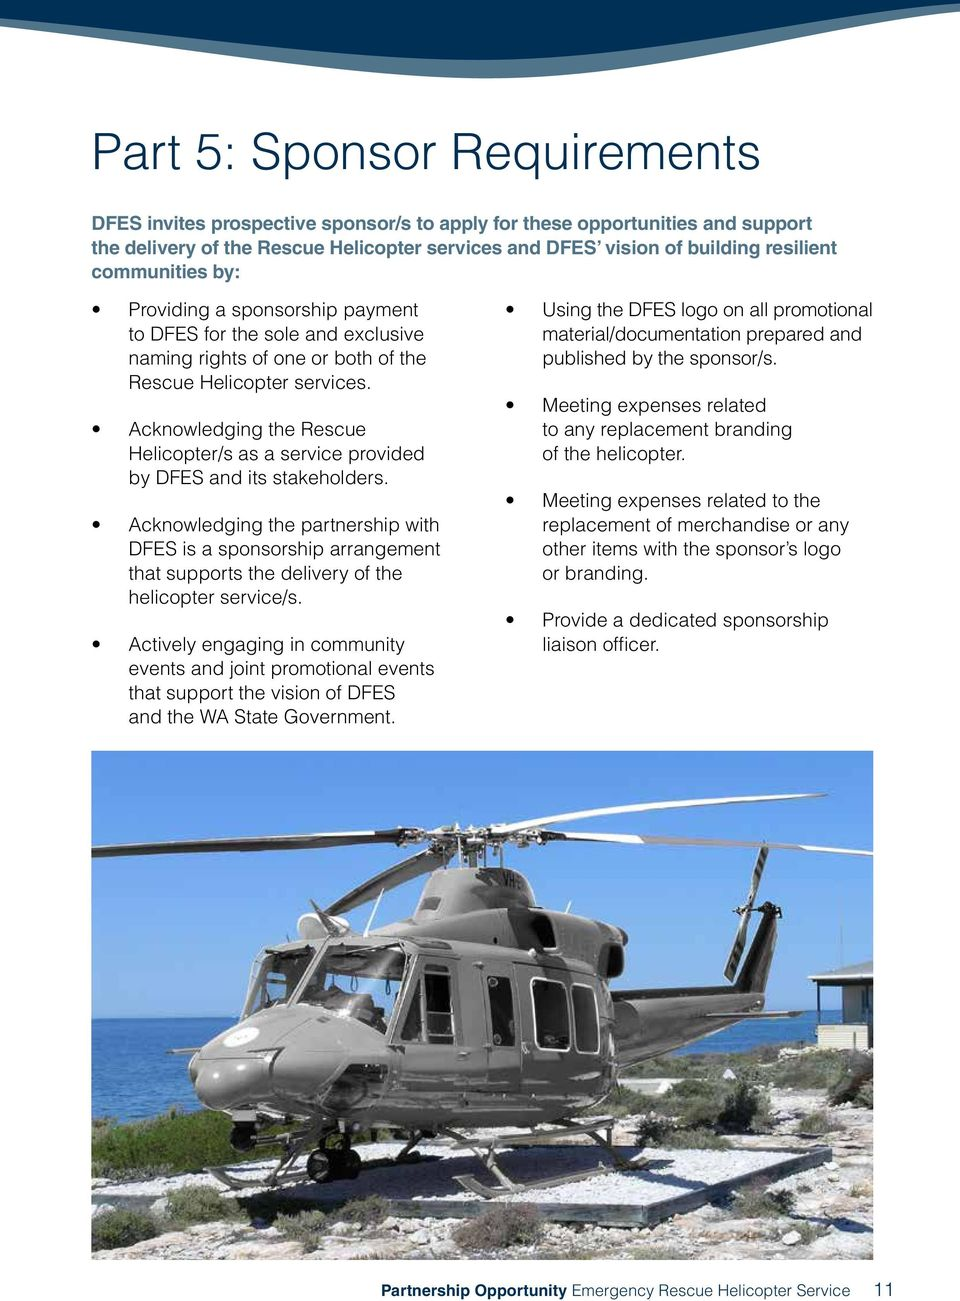 Acknowledging the Rescue Helicopter/s as a service provided by DFES and its stakeholders.